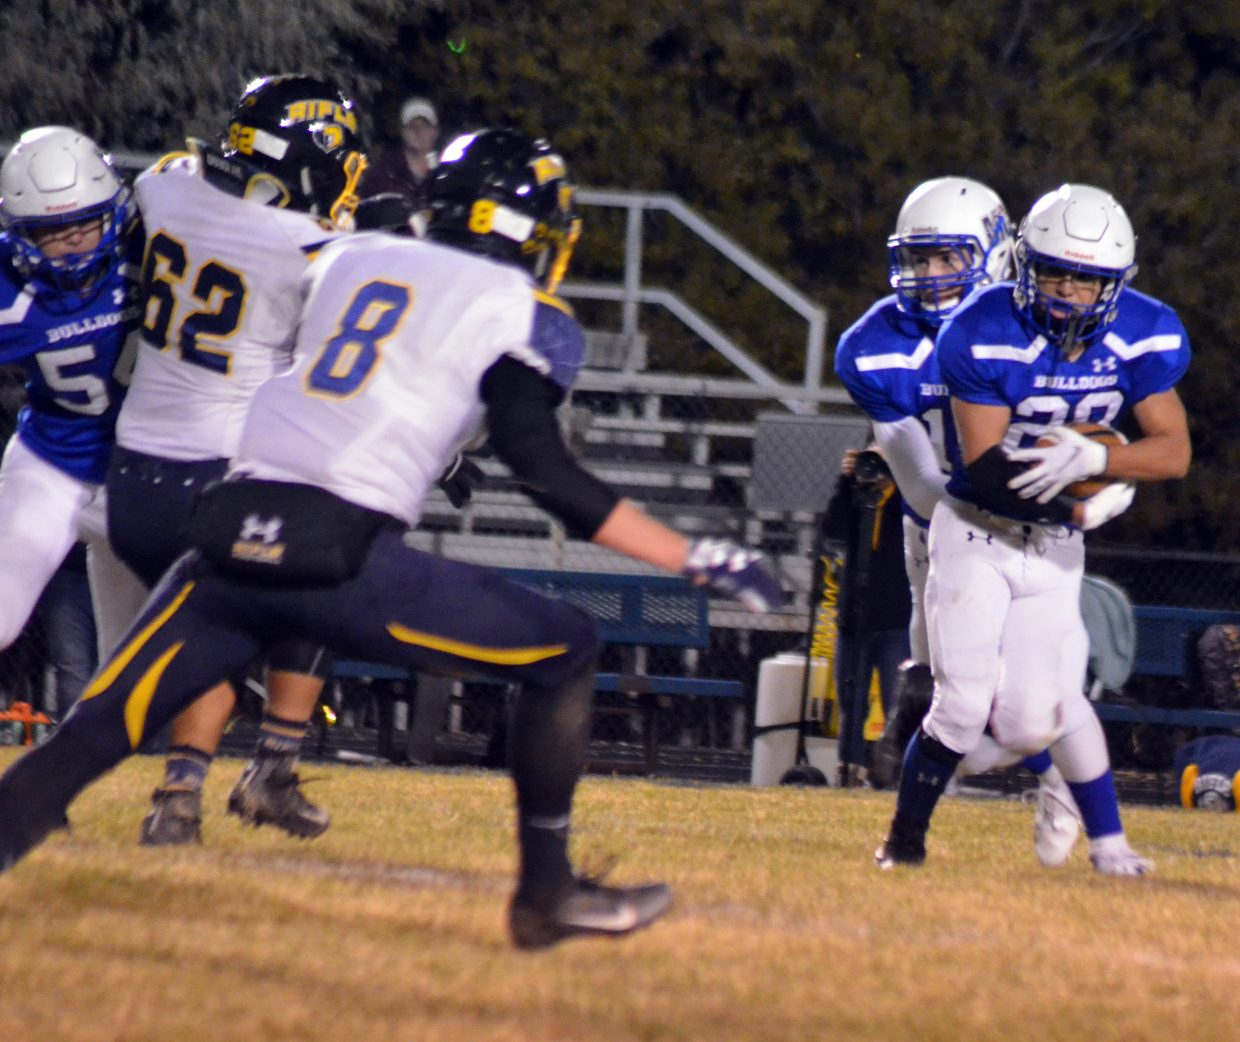 Moffat County High School's Kevin Hernandez takes the handoff from Colby Beaver.